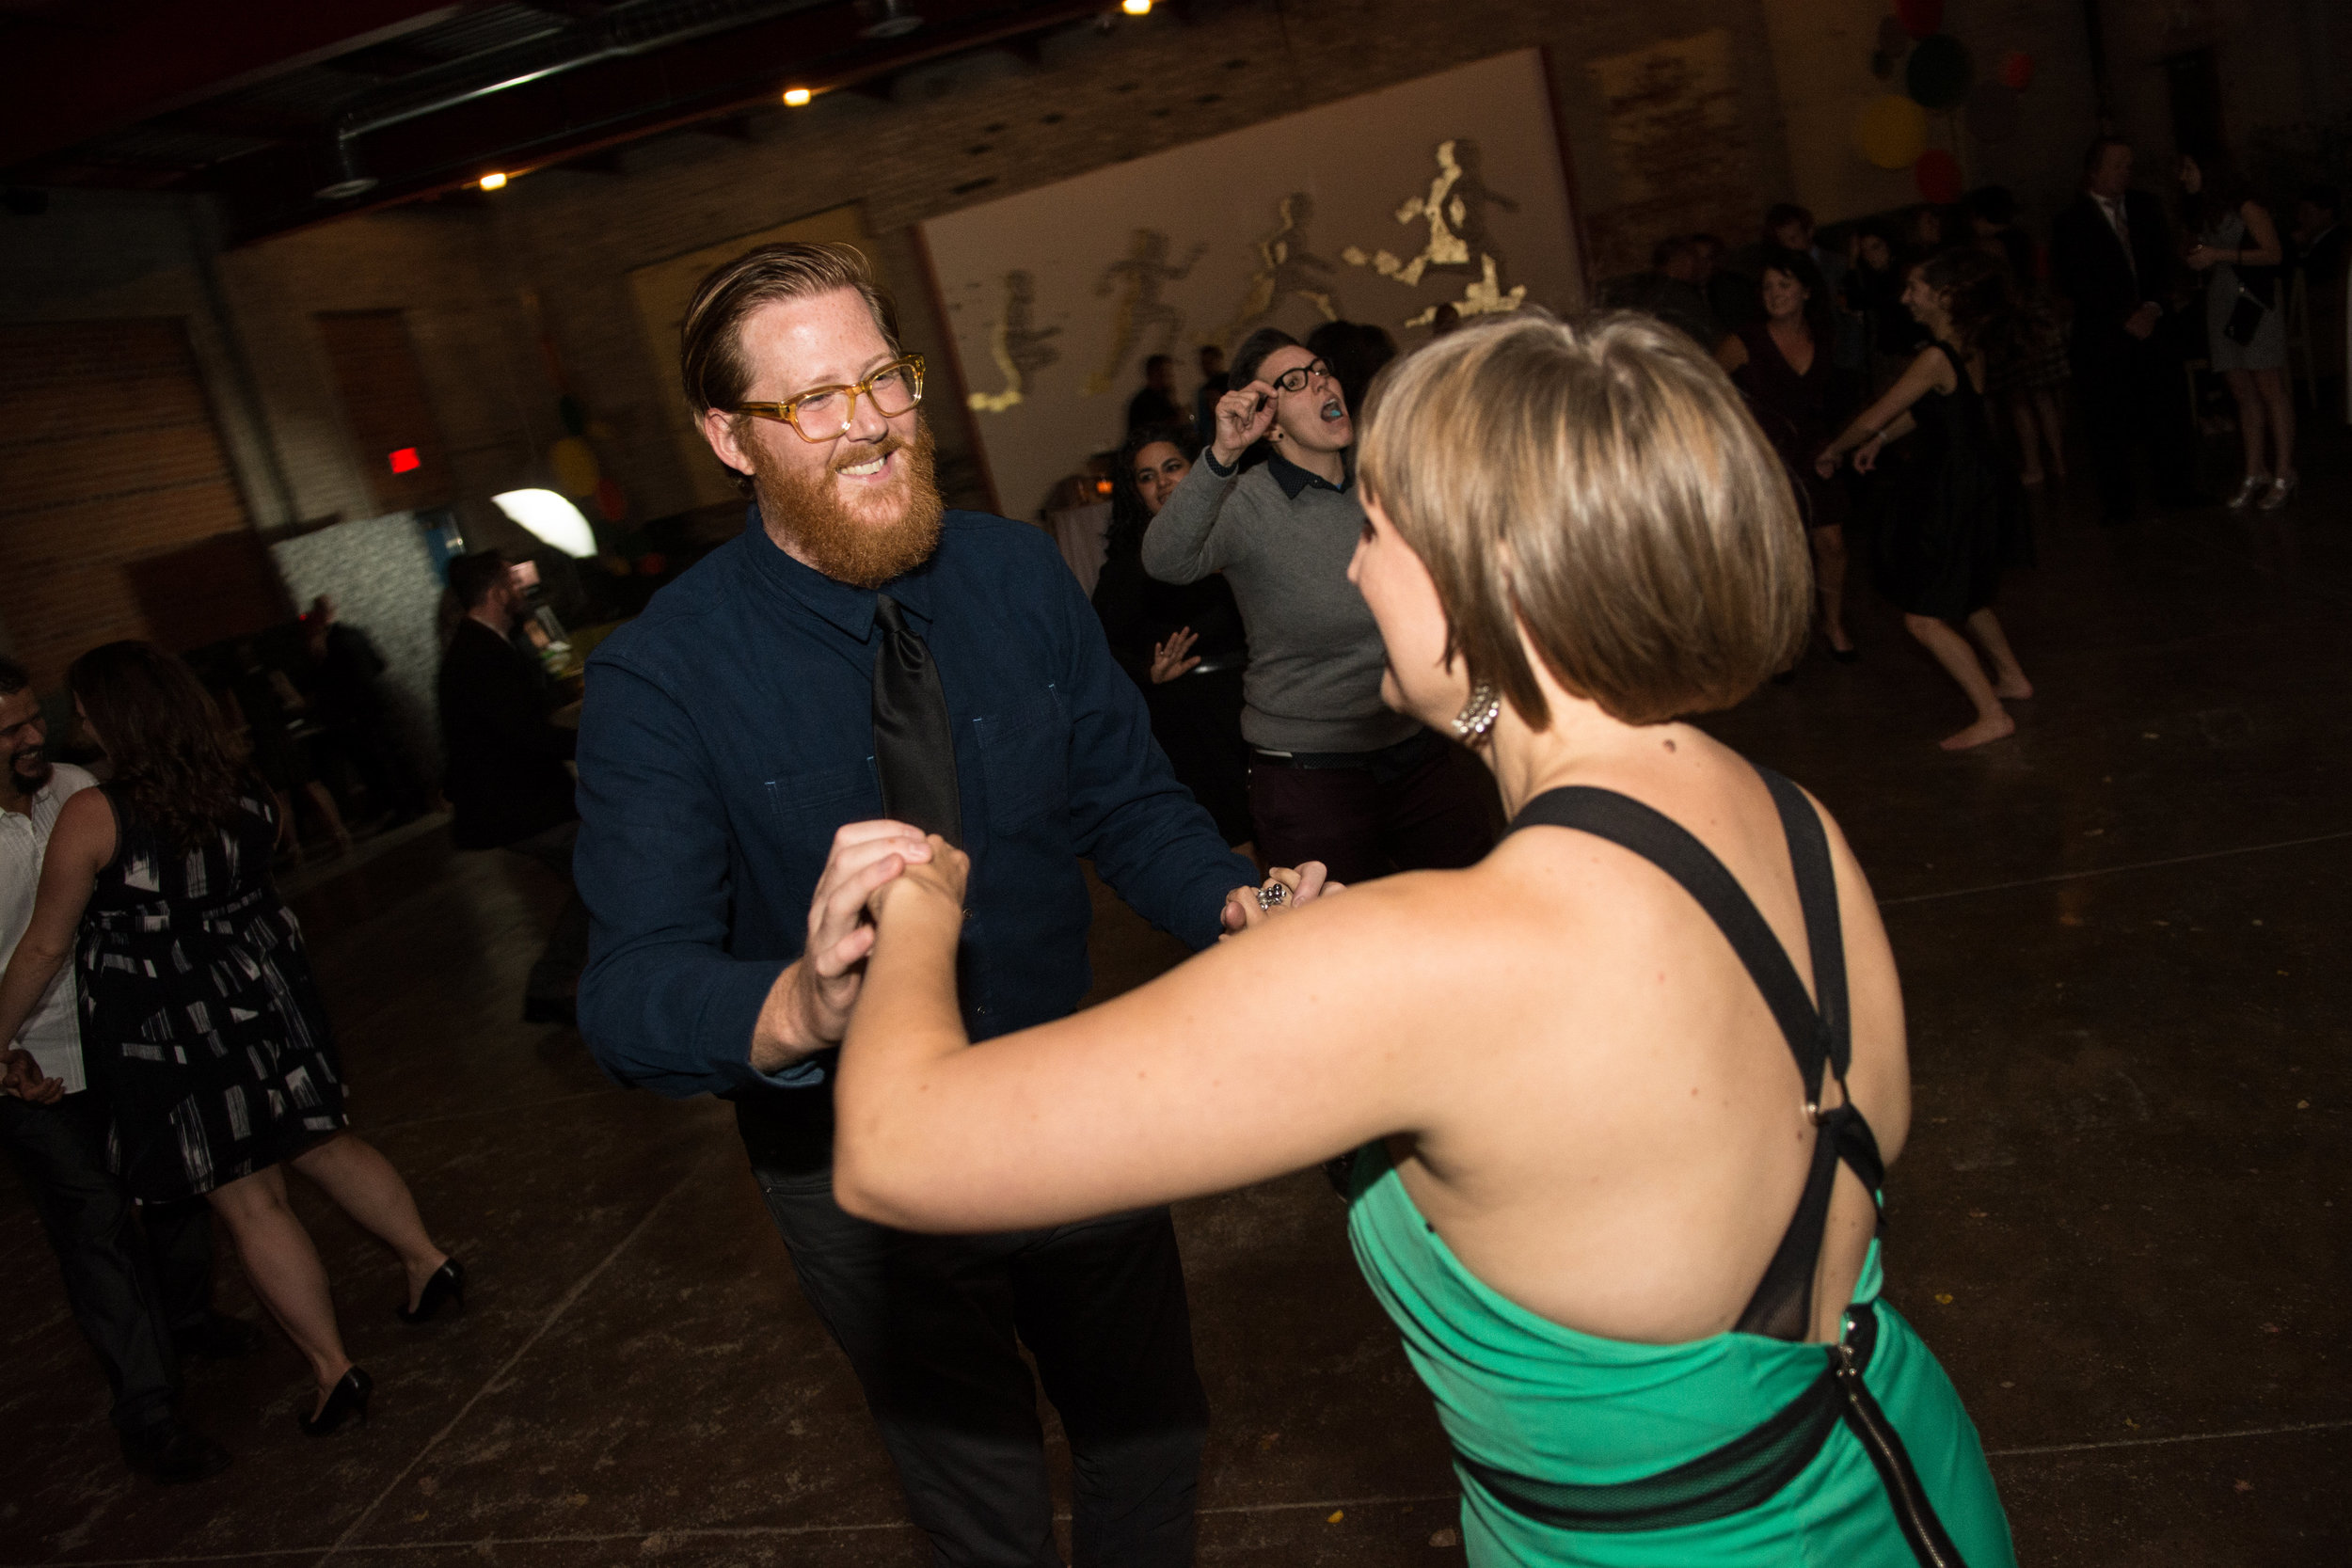 amanda+tom_wedding (582 of 592).jpg